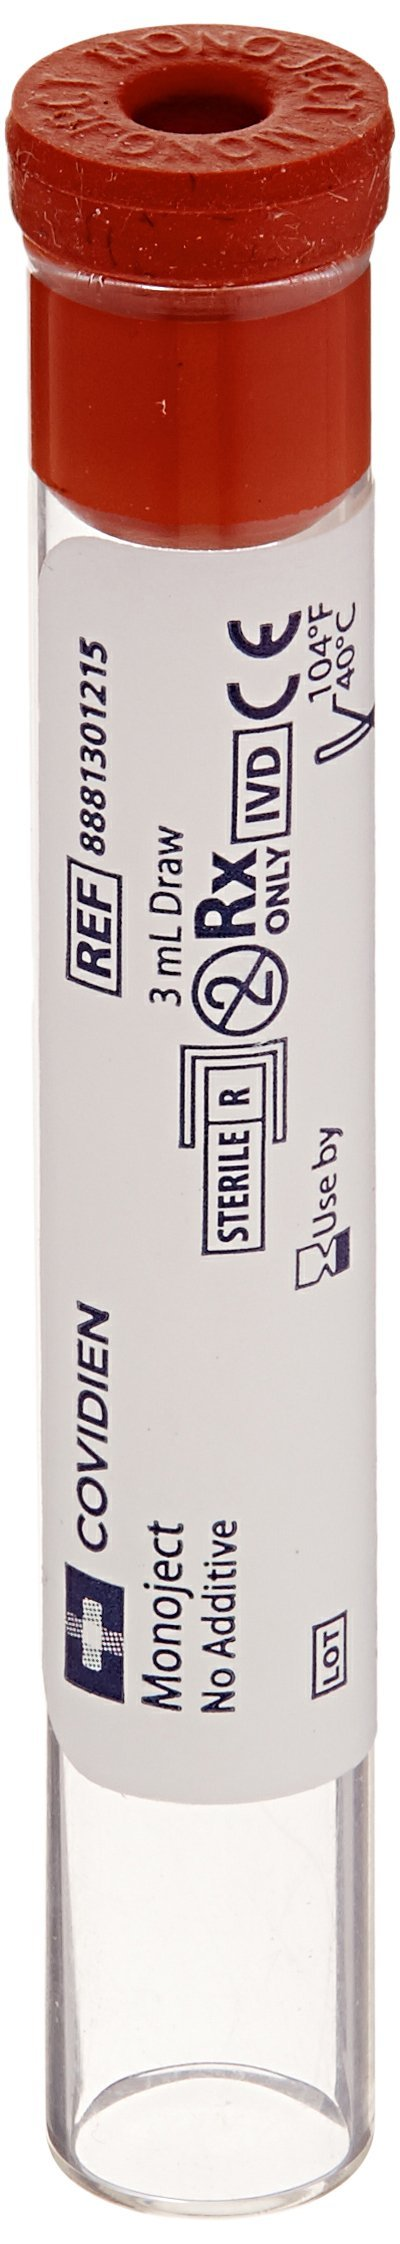 Kendall 8881301215 Monoject Silicone Coated Glass Blood Collection Tube with Glycerine Coated Red Stopper, 3mL Draw, 10.25mm Diameter x 64mm Length (Case of 1000)